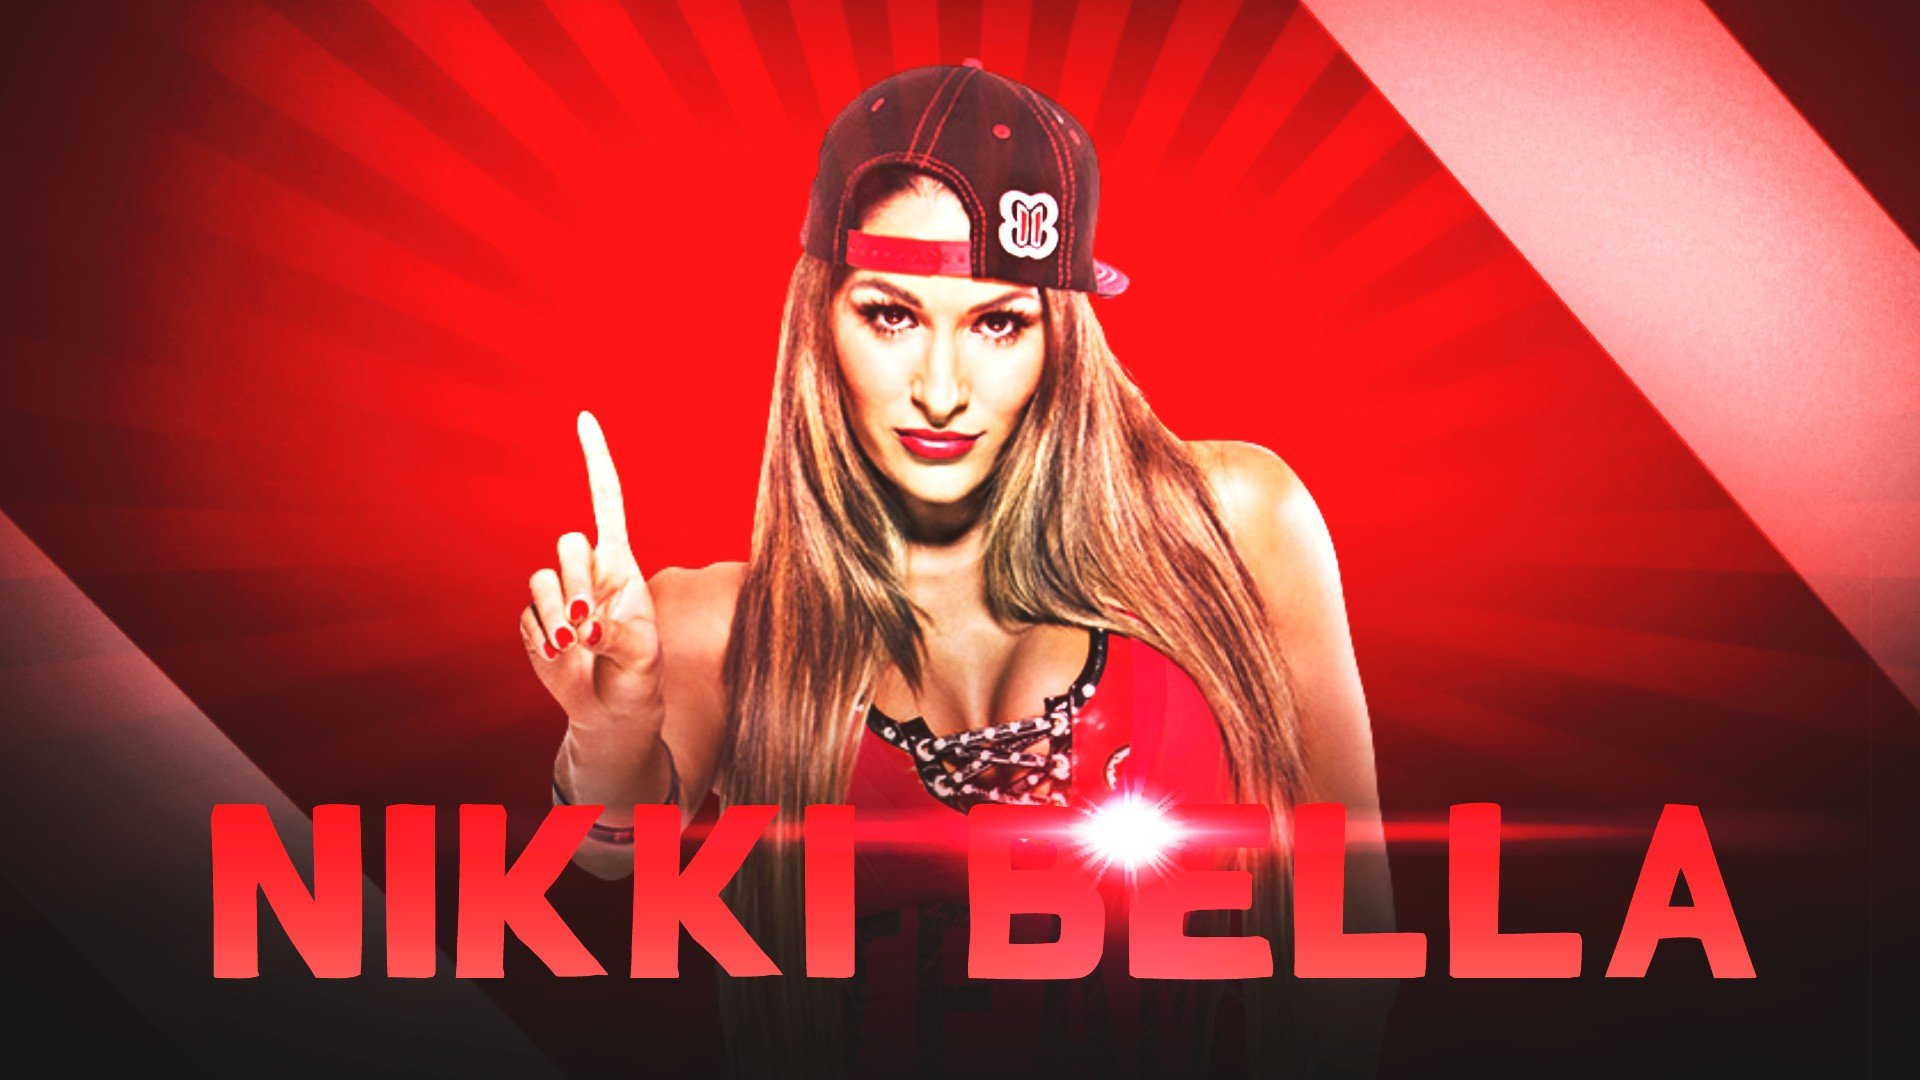 WWE Nikki Bella 2015 Wallpaper - WallpaperSafari